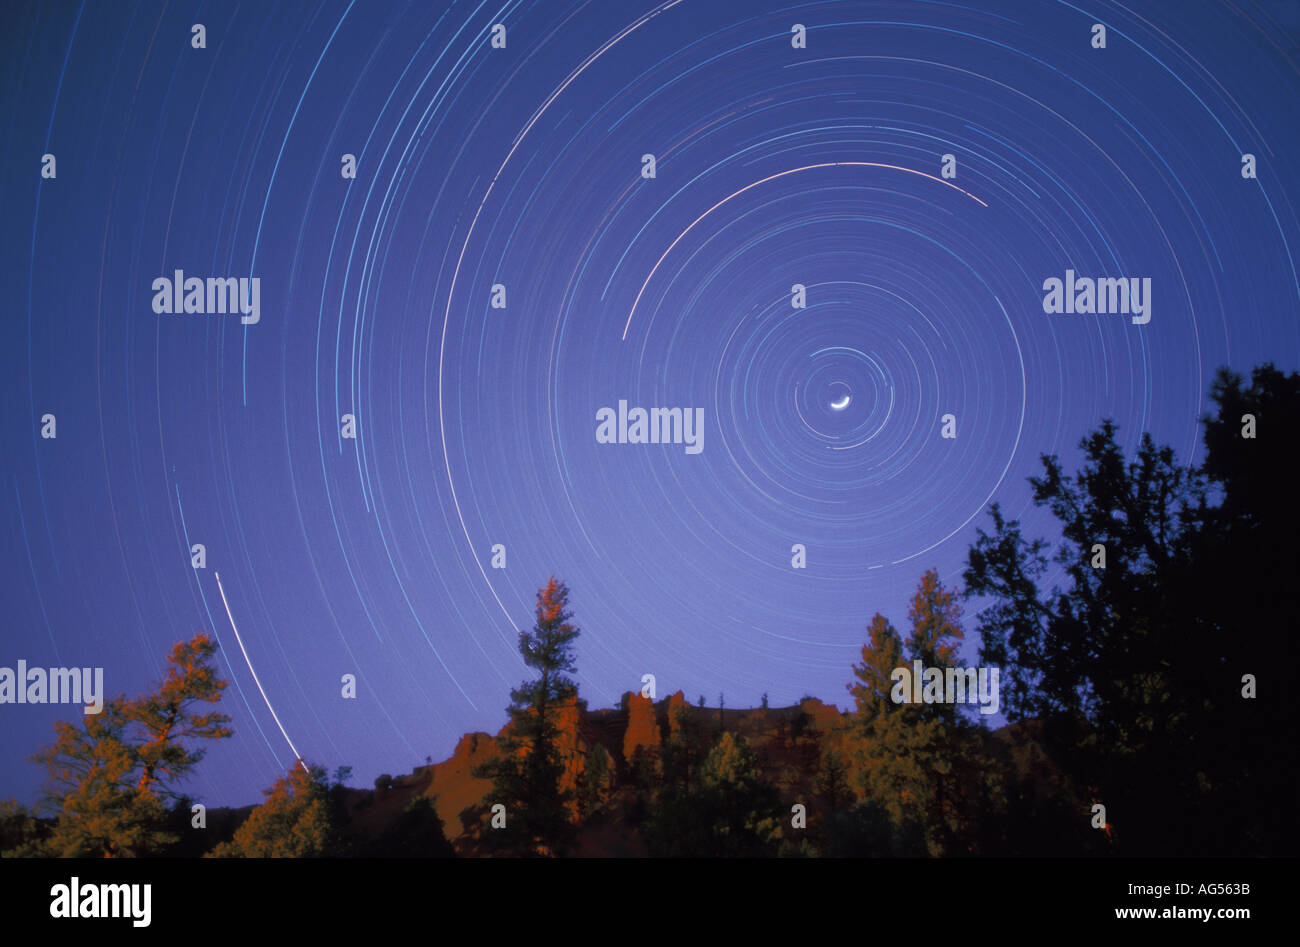 Star Trails Time exposure of night sky - Stock Image